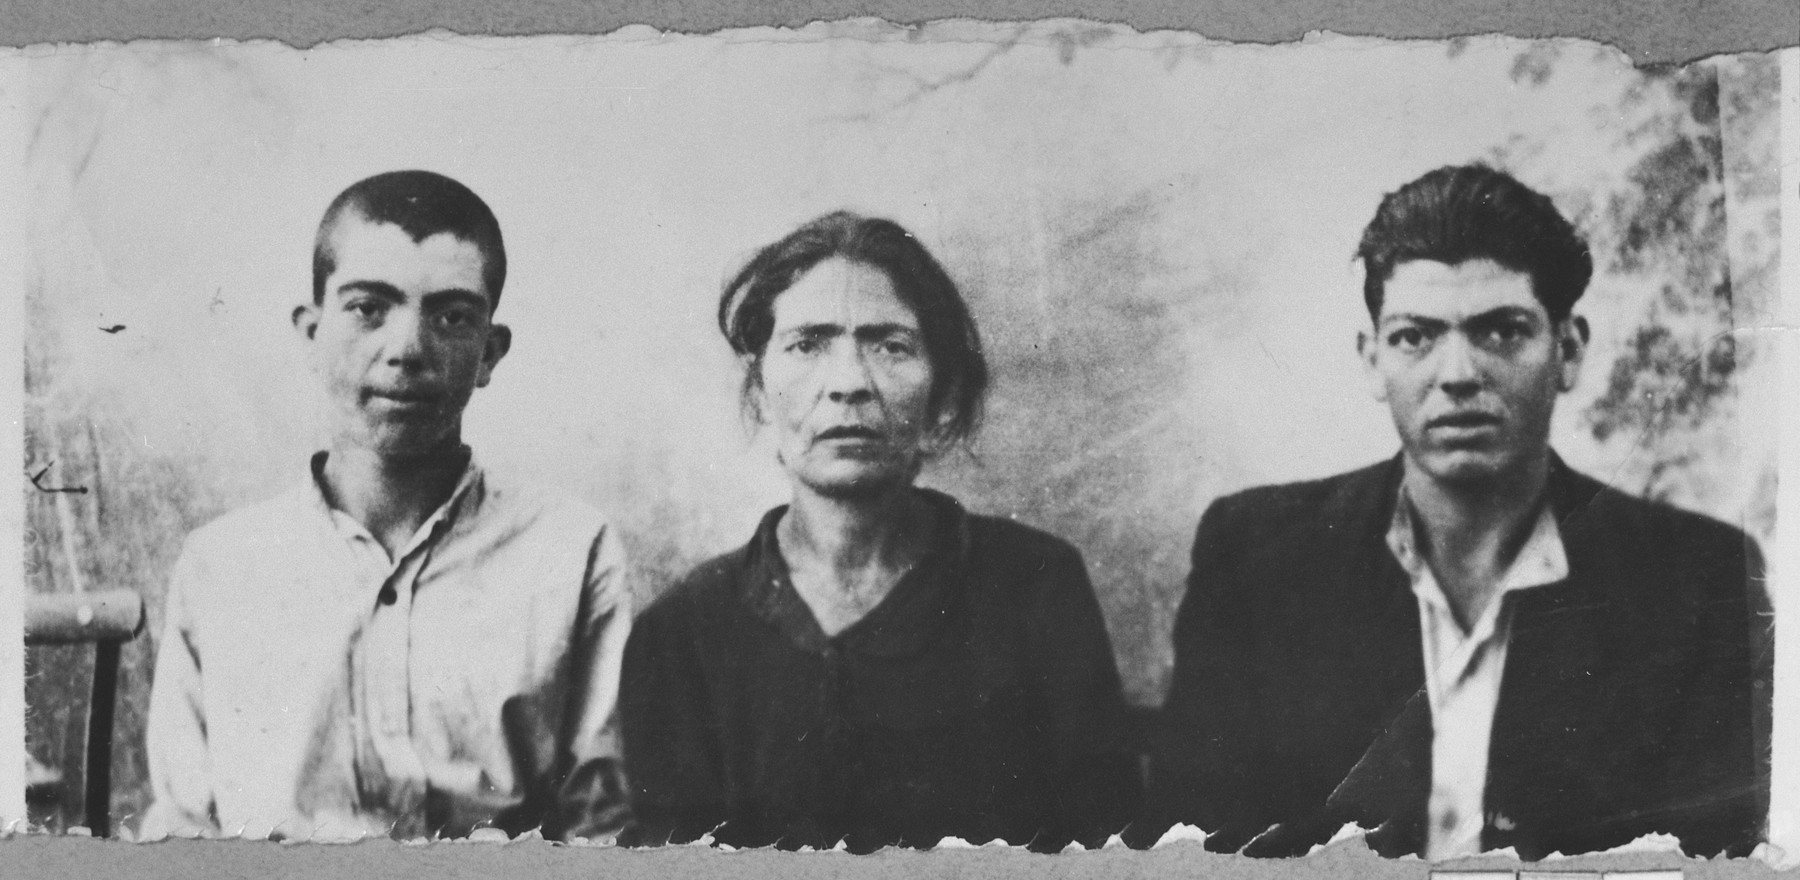 Portrait of Suncho Testa, [wife of Peris Testa], and Peris' sons, Yakov and Haim.  Yakov and Haim were laborers.  They lived at Orisarska 13 in Bitola.